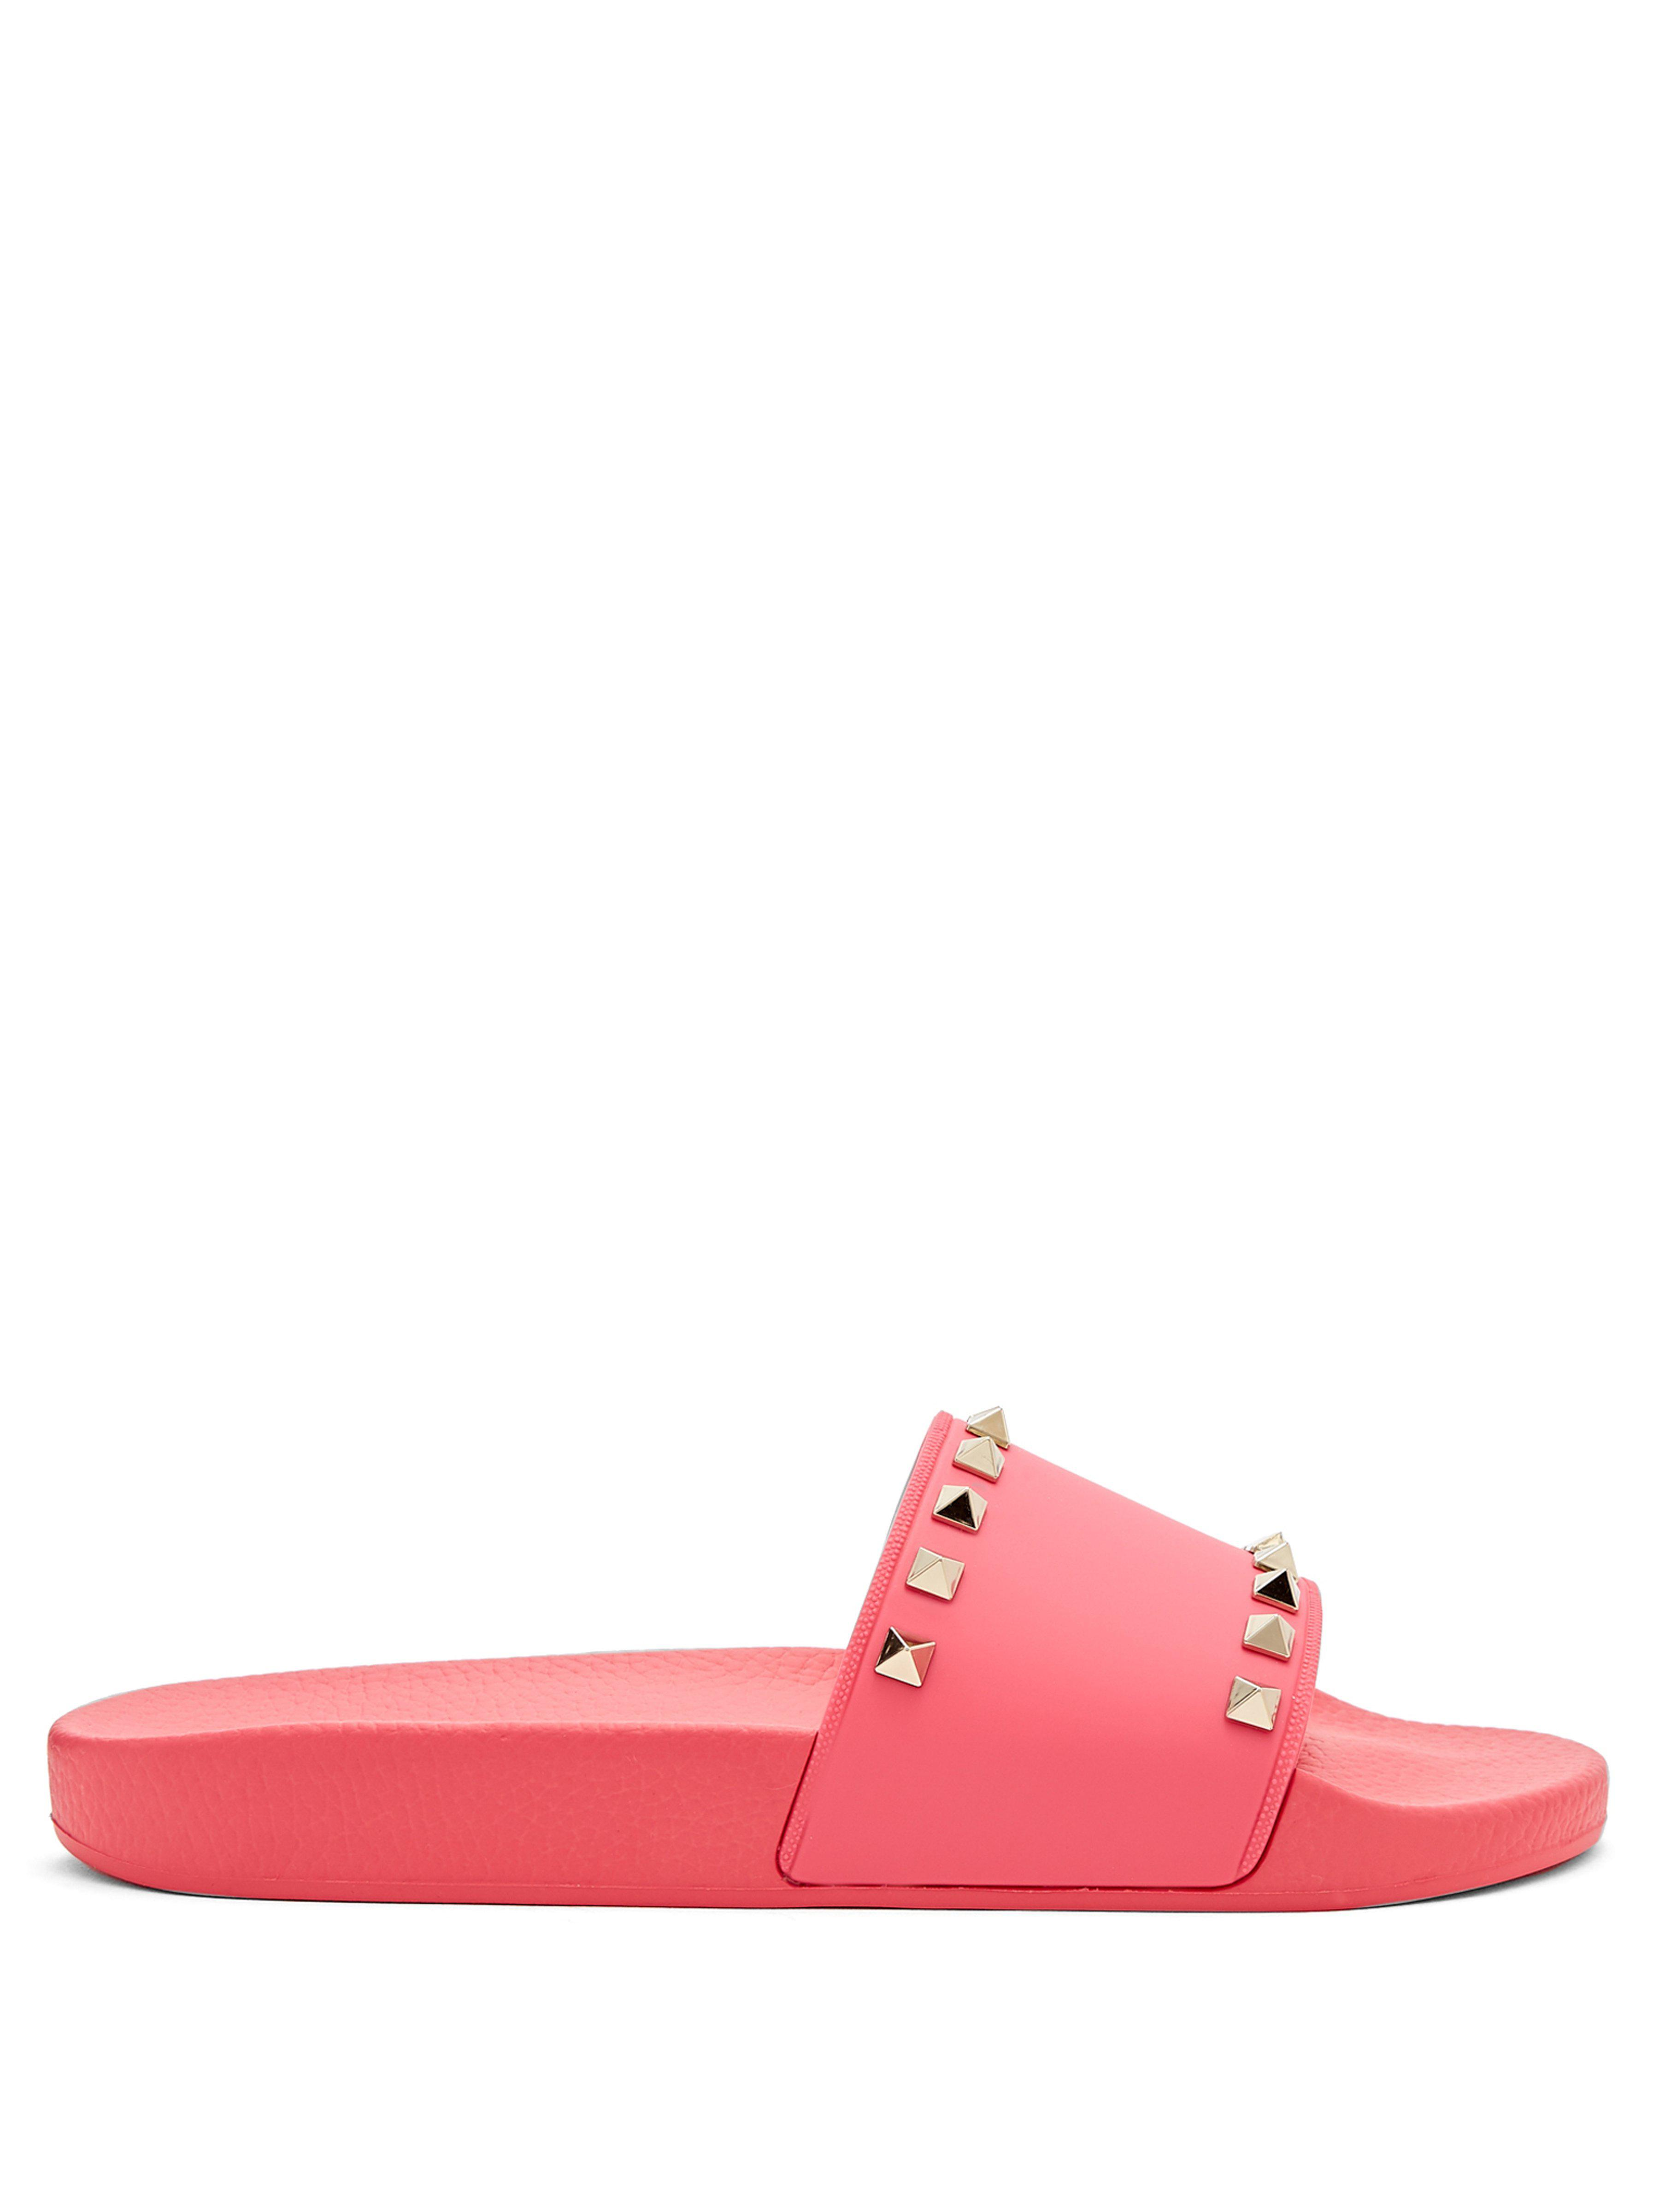 6e21134026a3 Valentino Rockstud Rubber Slides in Pink - Save 58.7360594795539% - Lyst